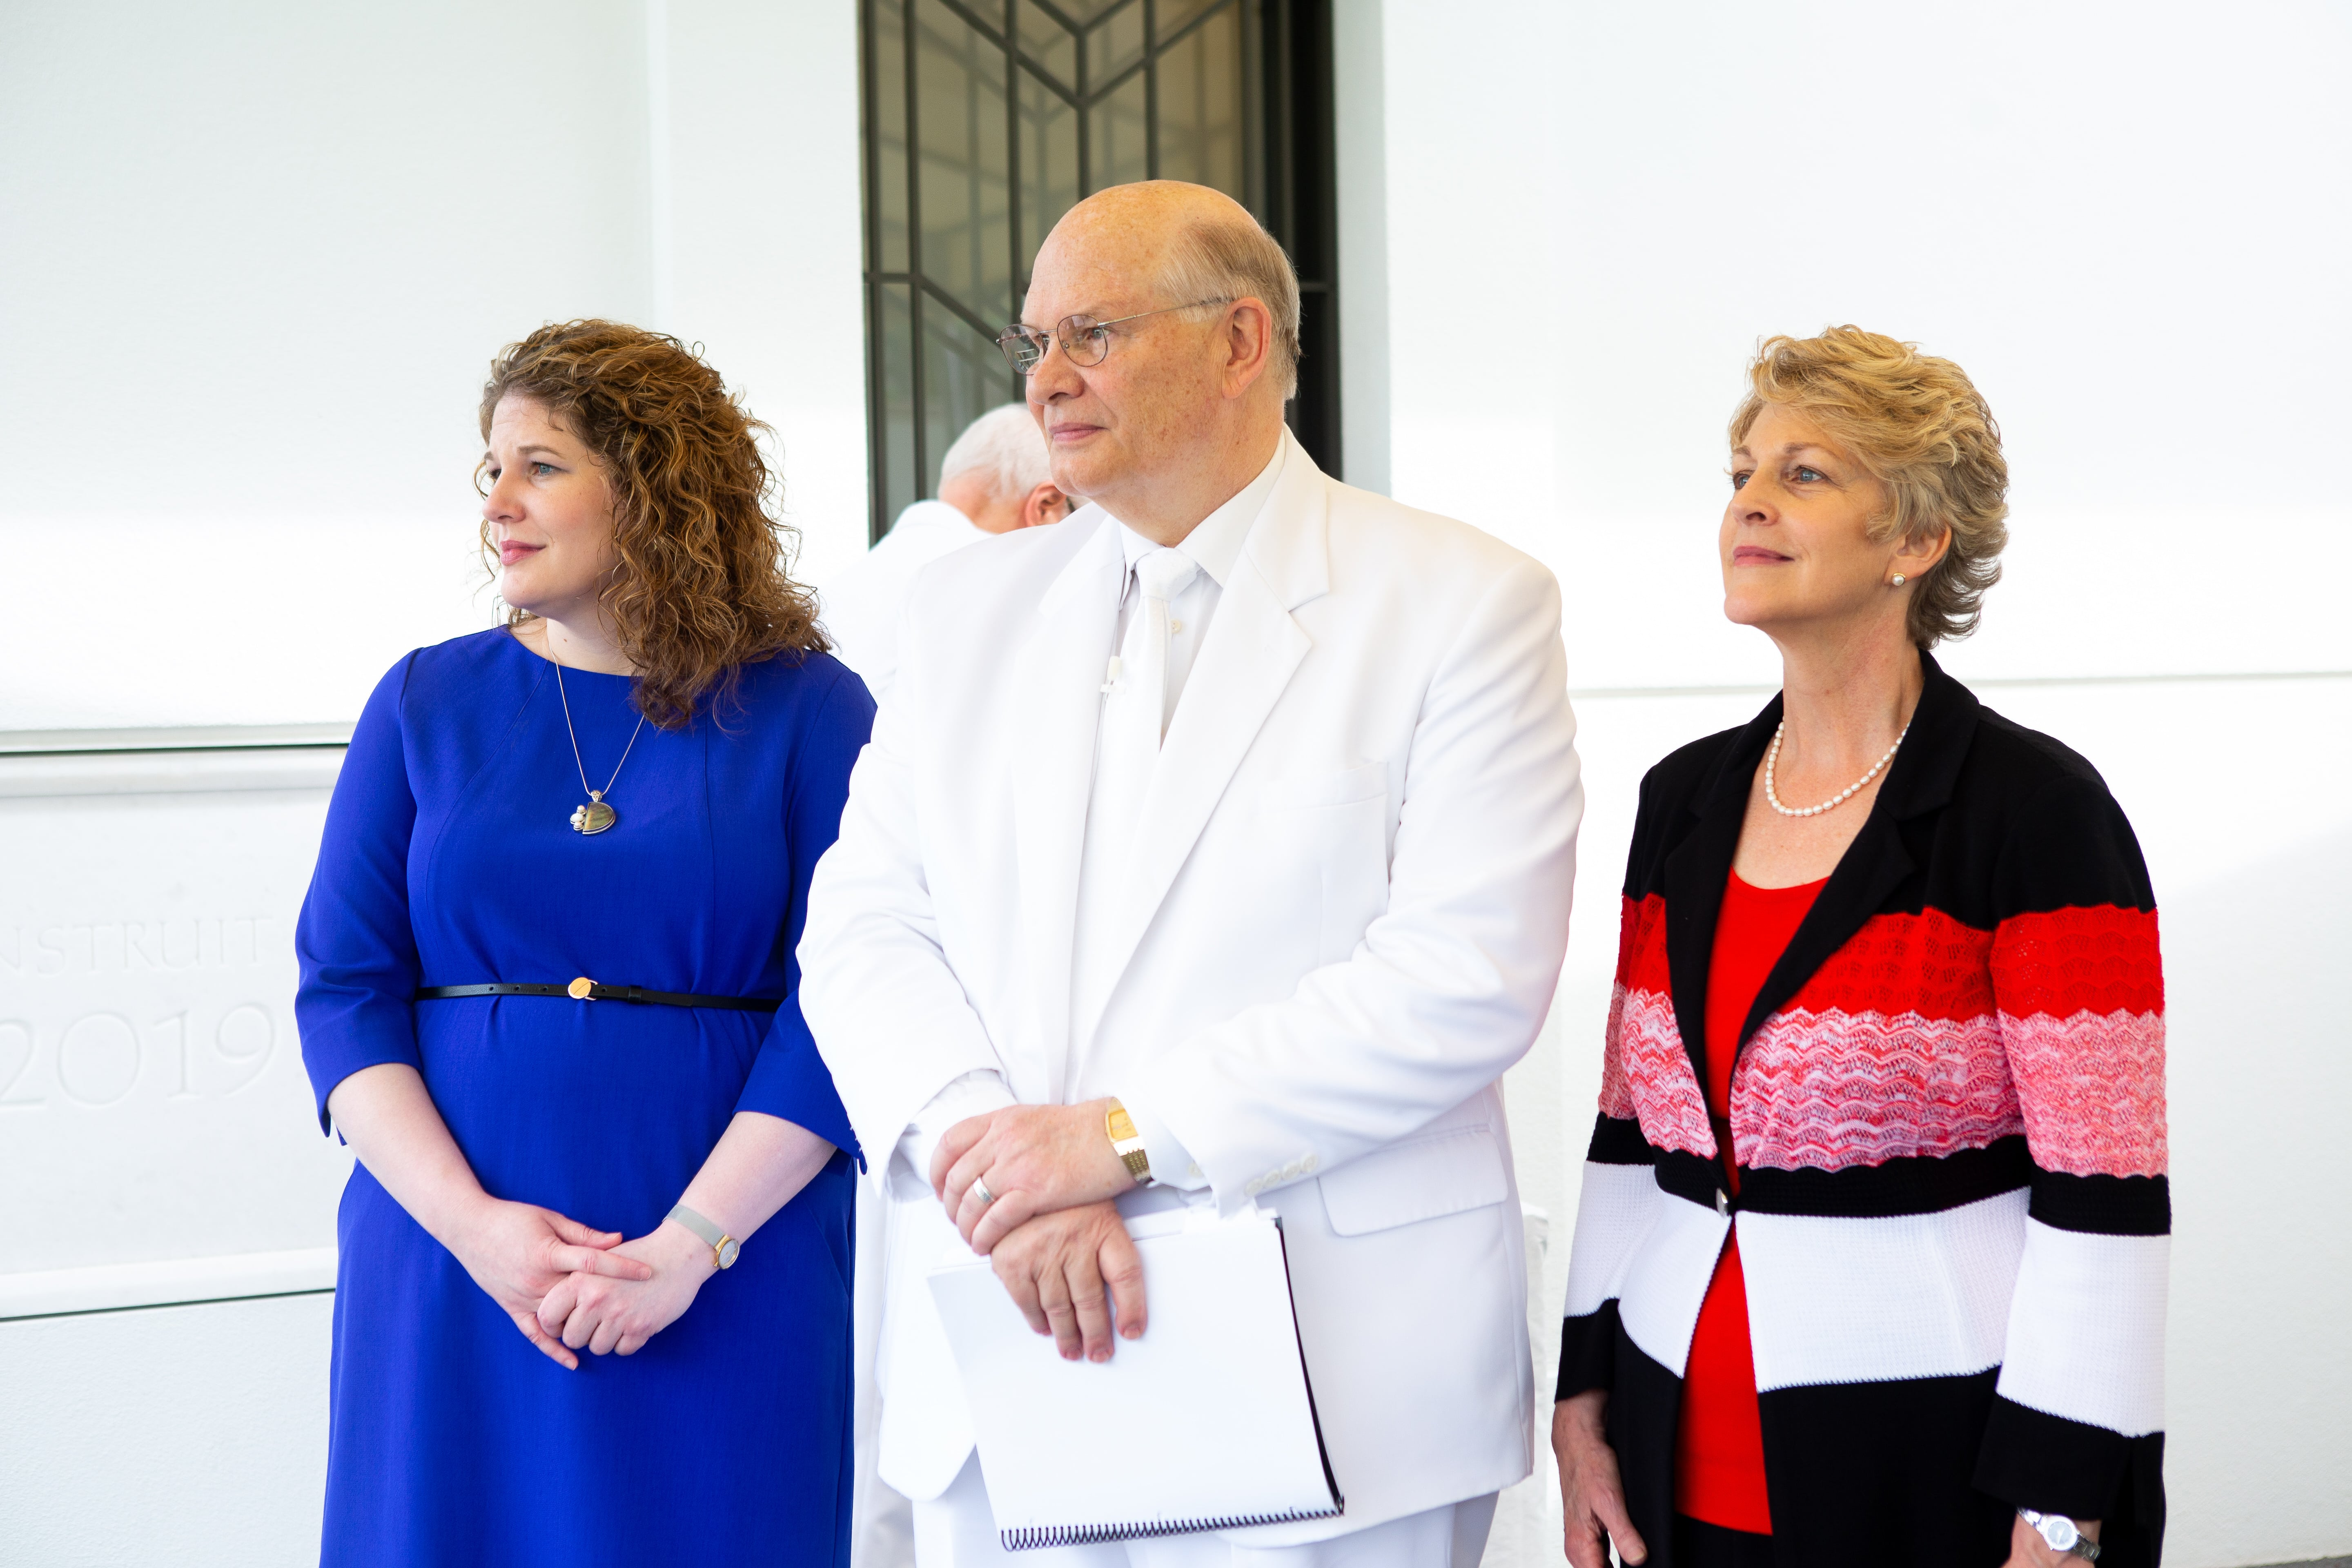 Elder Dale G. Renlund of the Quorum of the Twelve Apostles, center, is joined by his wife, Sister Ruth L. Renlund, right, and their daughter, Ashley Renlund, as he conducts the cornerstone ceremony during the dedication of the Kinshasa Democratic Republic of the Congo Temple on Sunday, April 14, 2019.